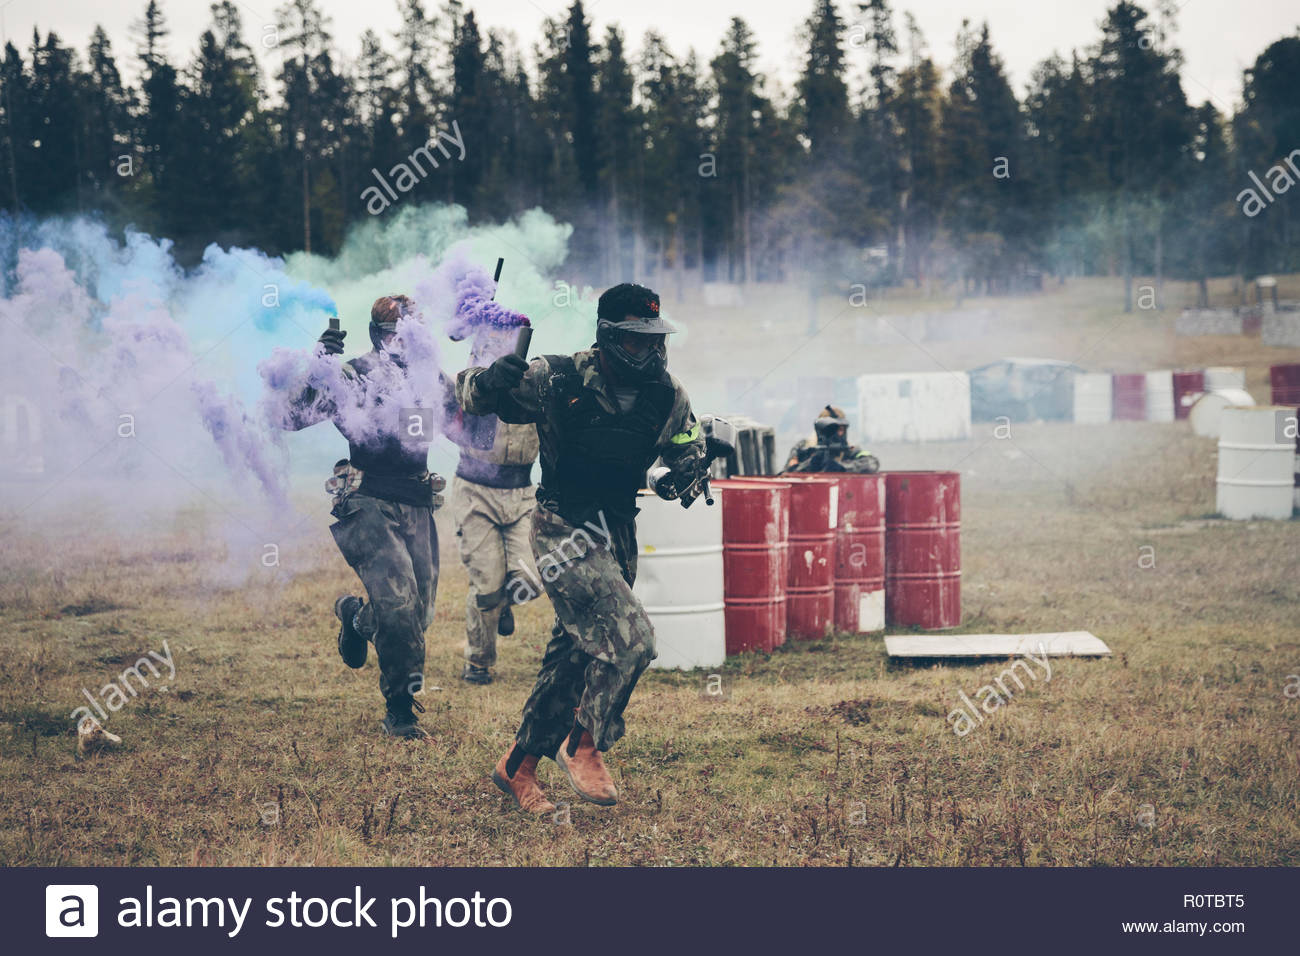 Paintballing team with smoke bombs running in field - Stock Image